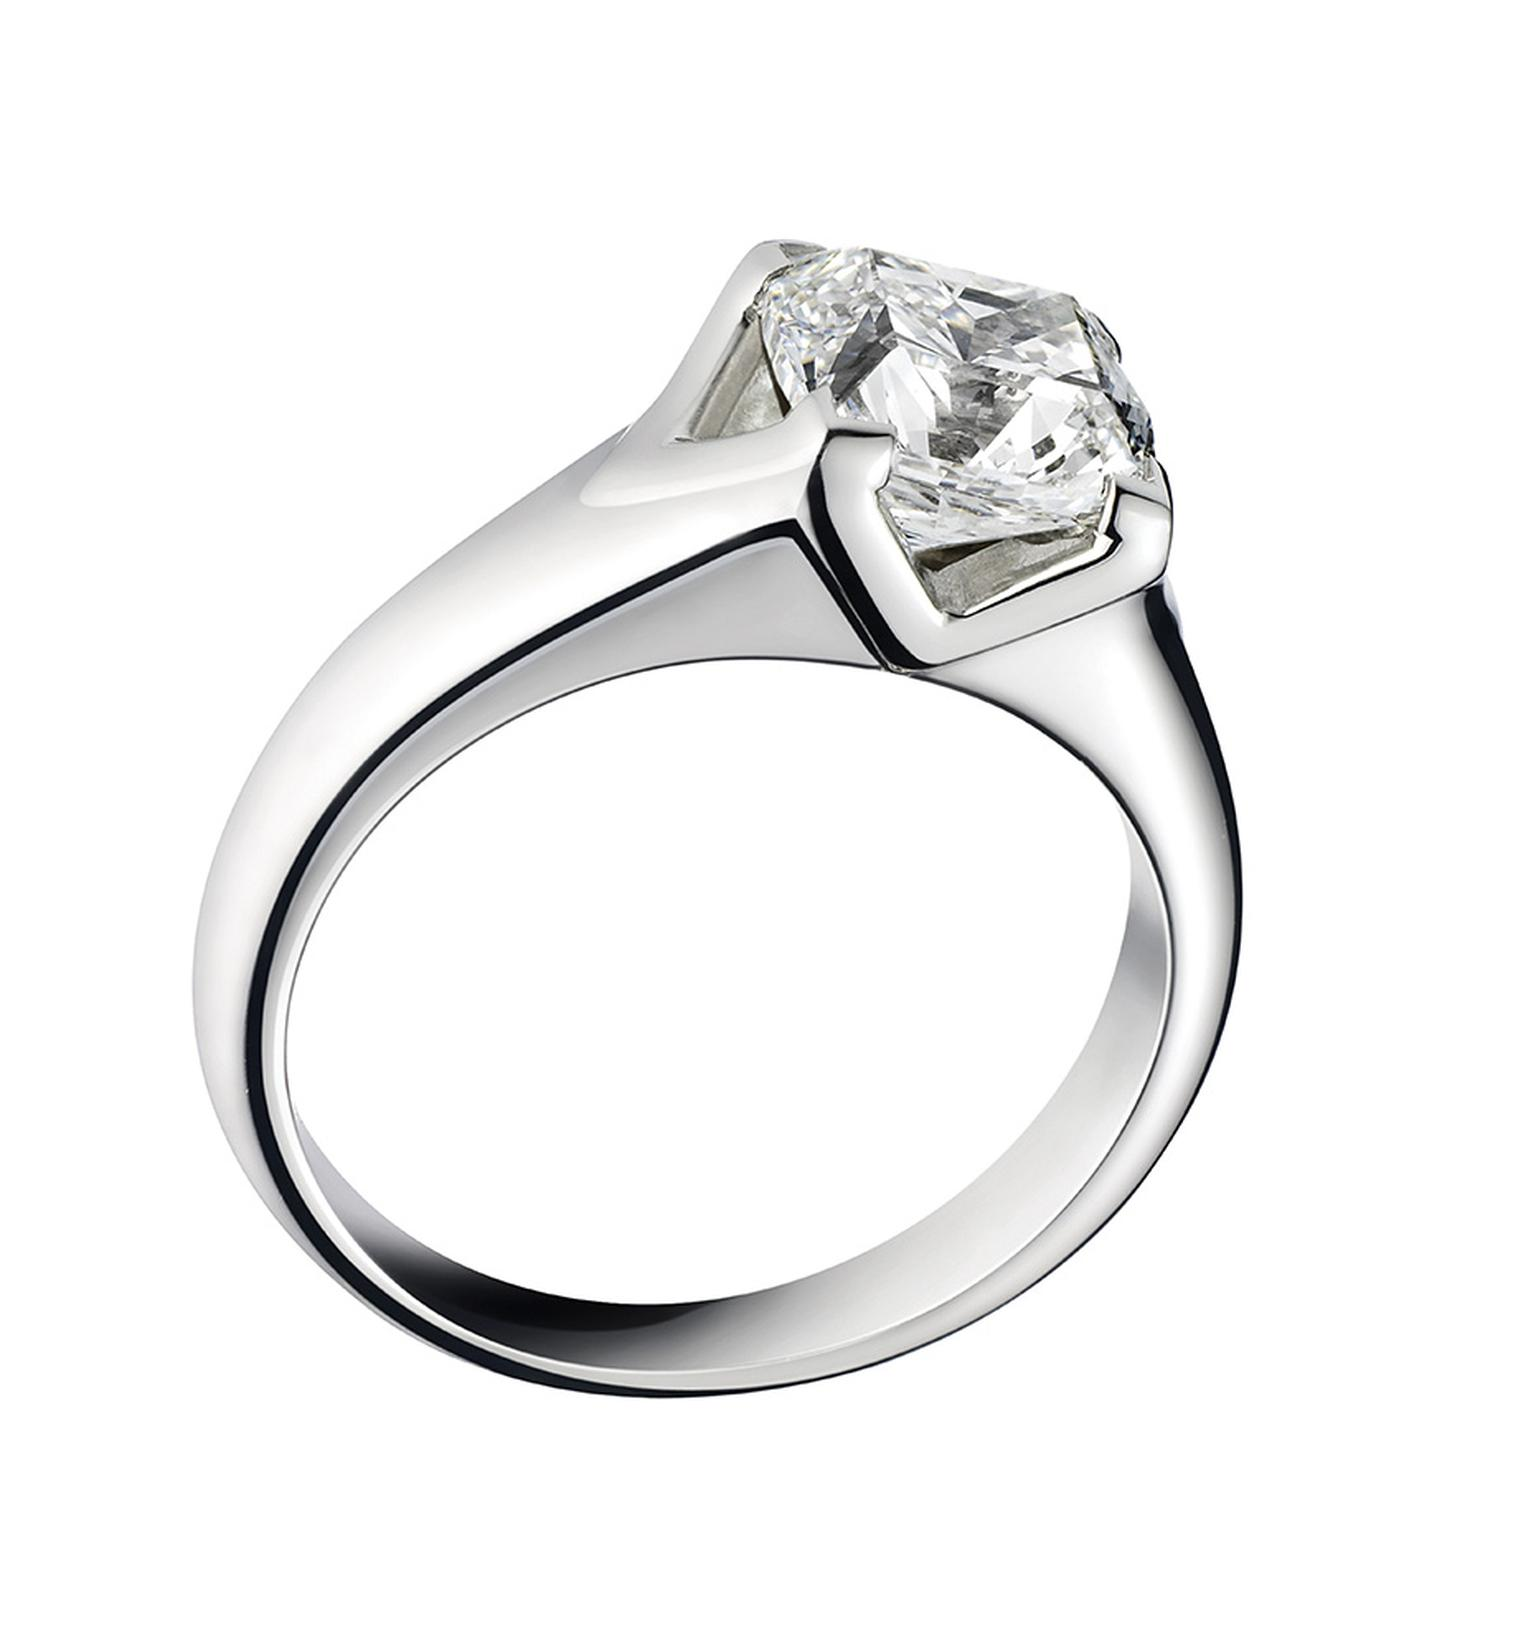 Asprey Cut diamond engagement ring